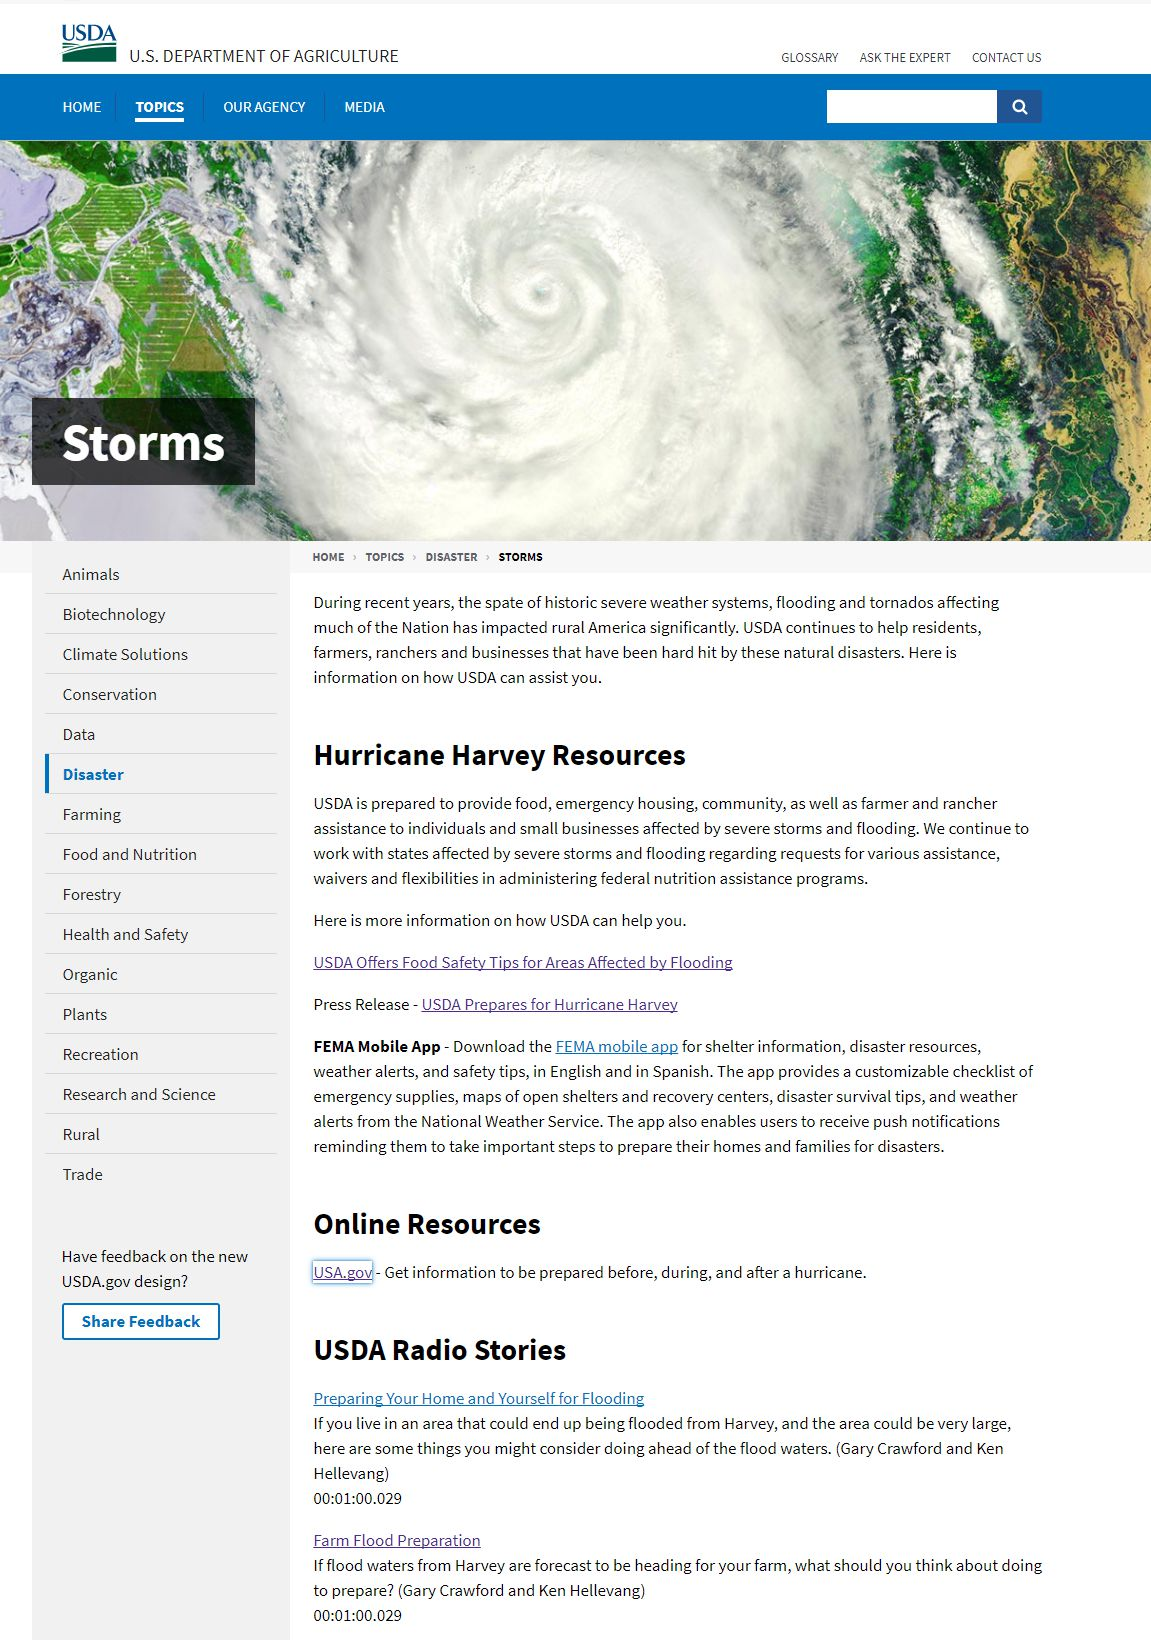 USDA.gov's Hurricane Harvey page